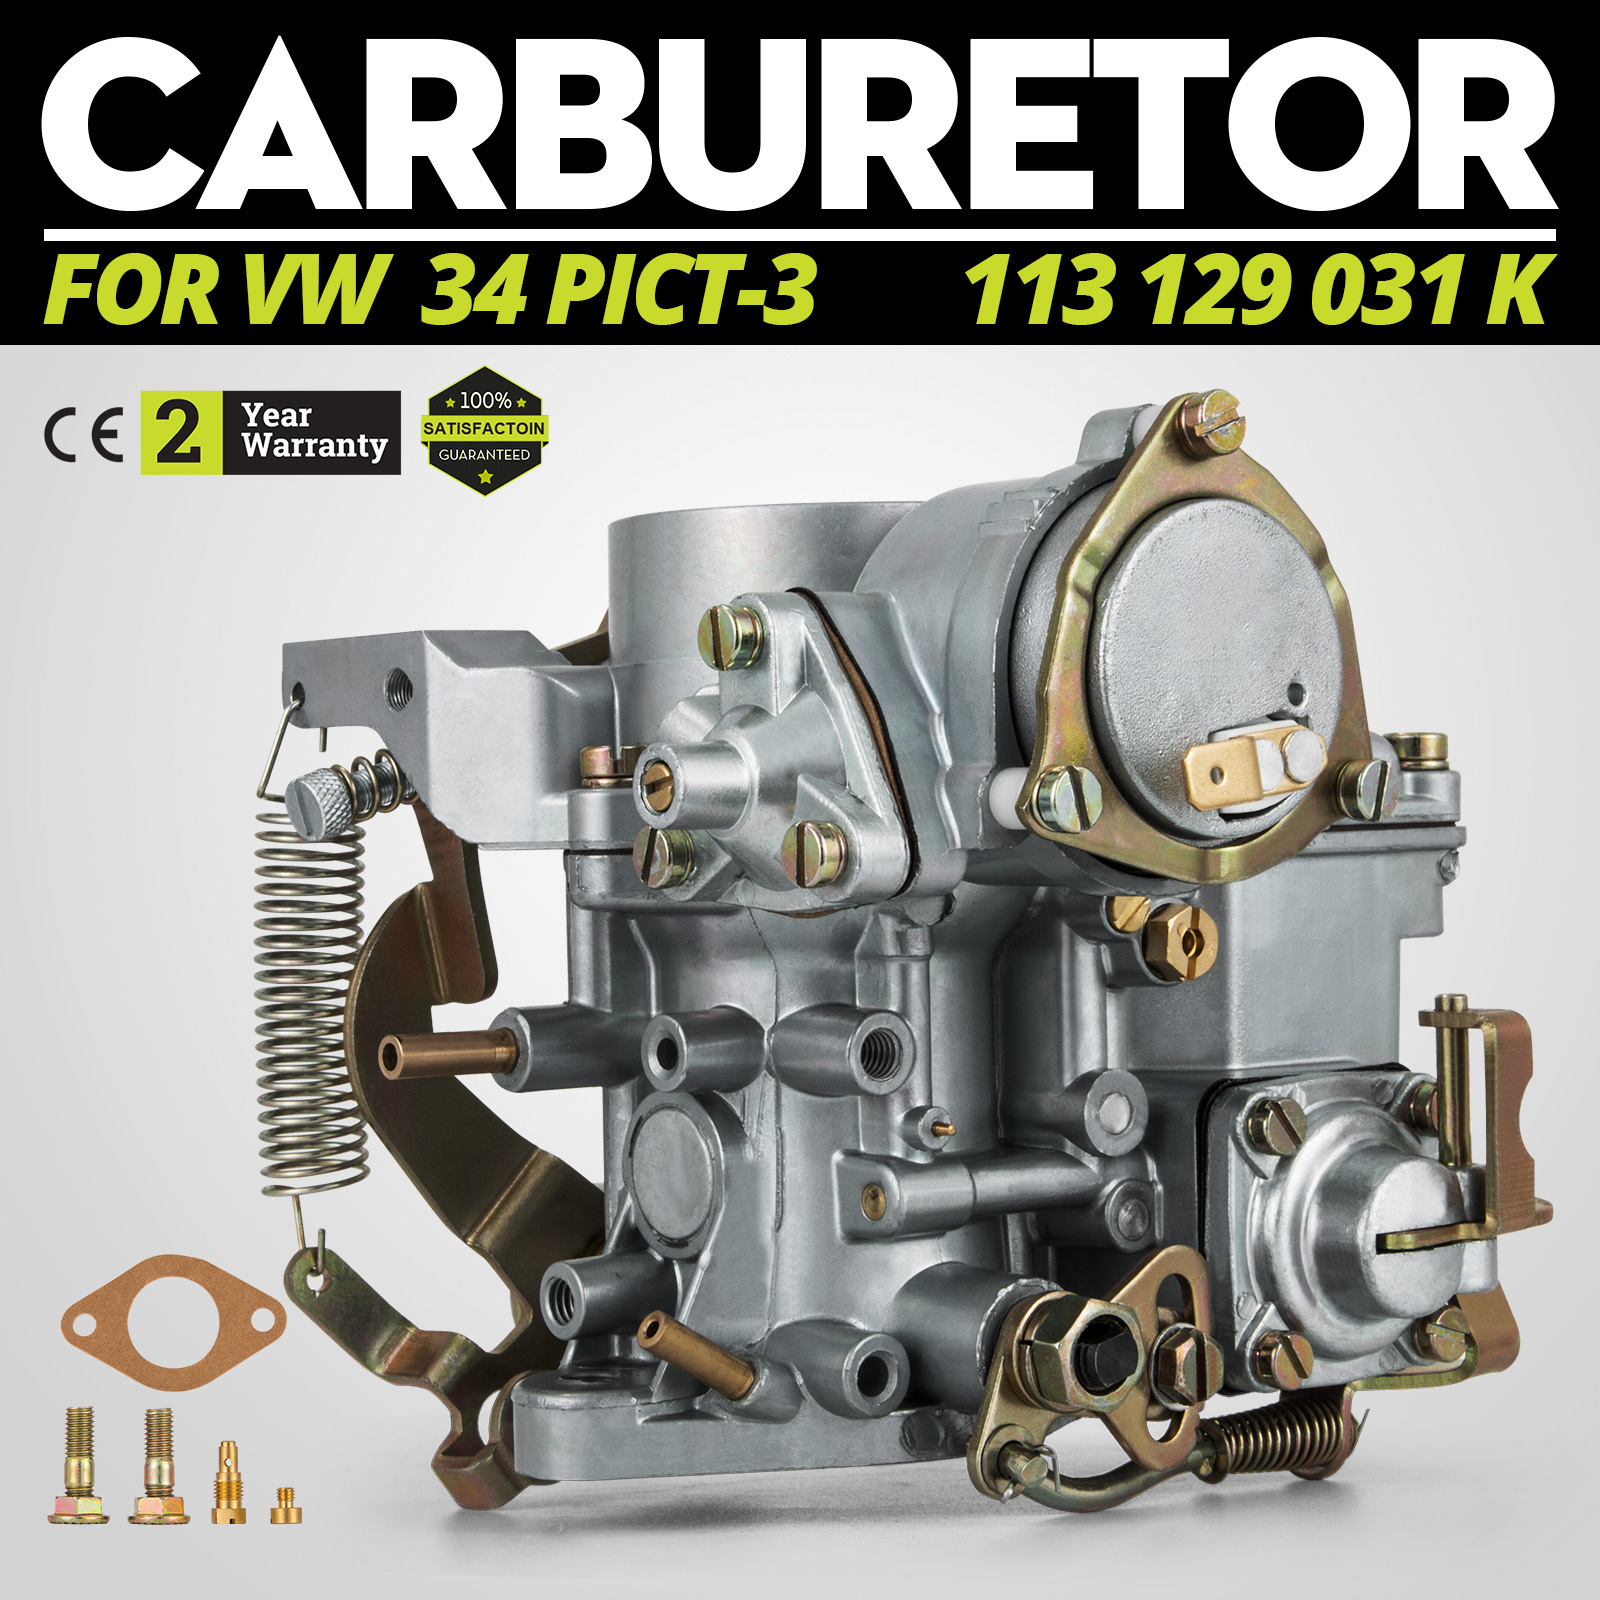 VW Beetle 34 PICT-3 Carburetor 113 129 031 K Type 1 And 2